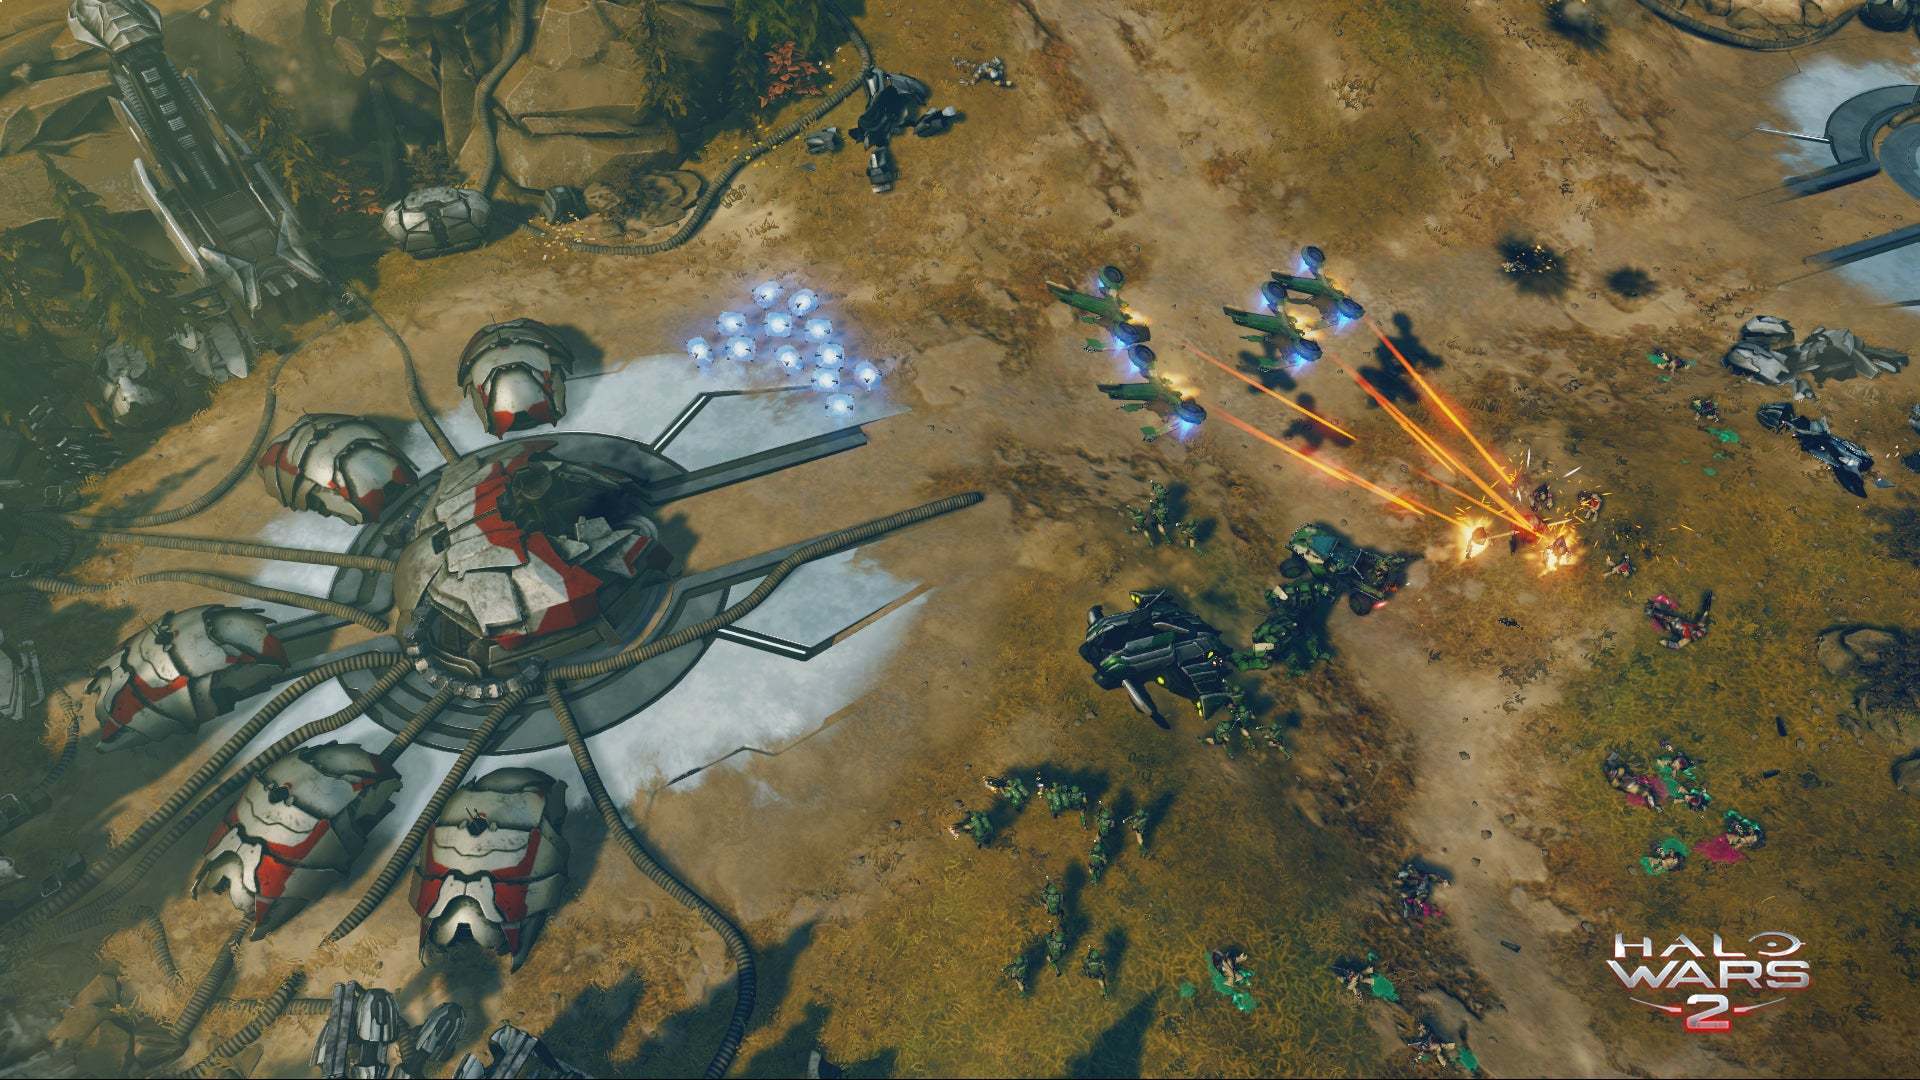 Halo Wars 2 Campaign Preview  Polished  Pretty  But Not As Exciting As Blitz Mode